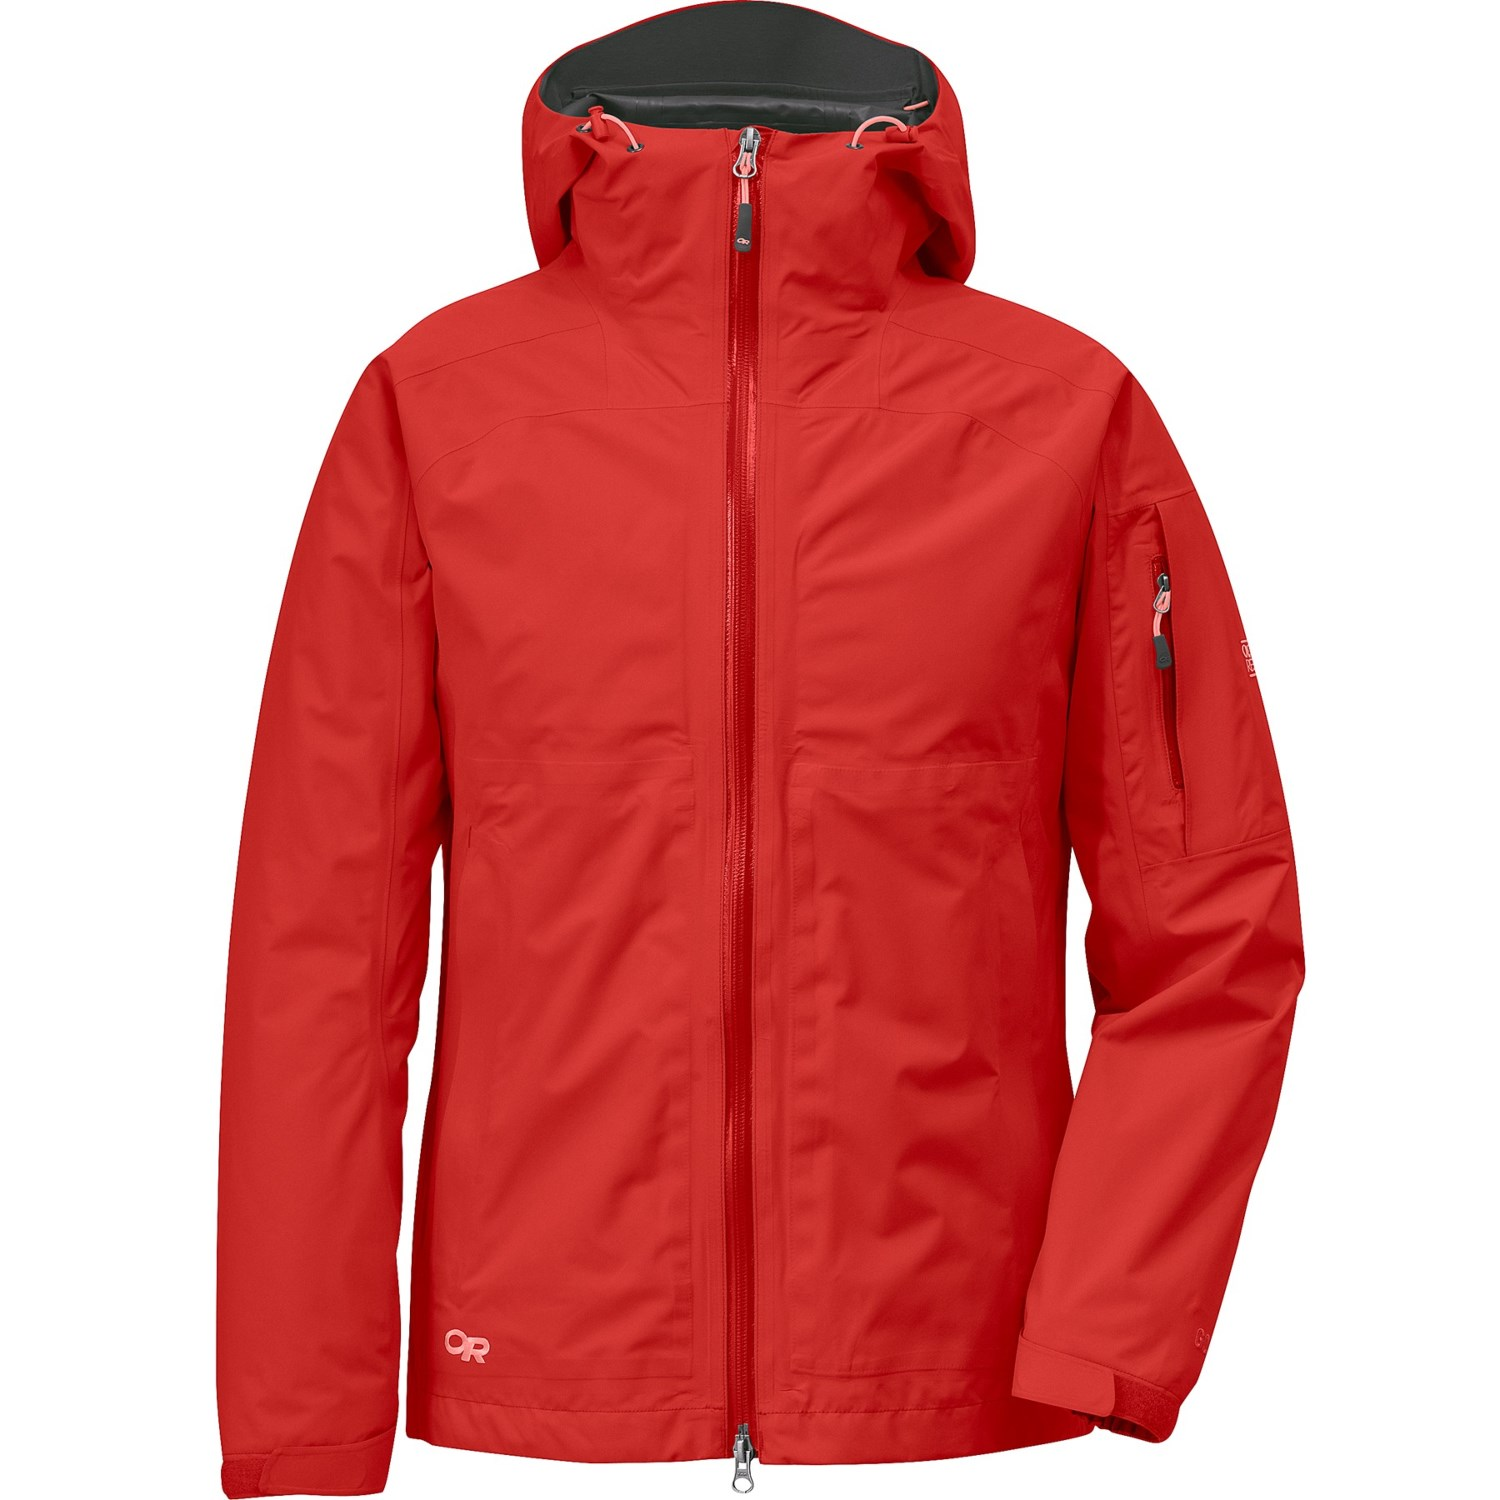 Outdoor Research Aspire Gore Tex 174 Jacket For Women 7015t